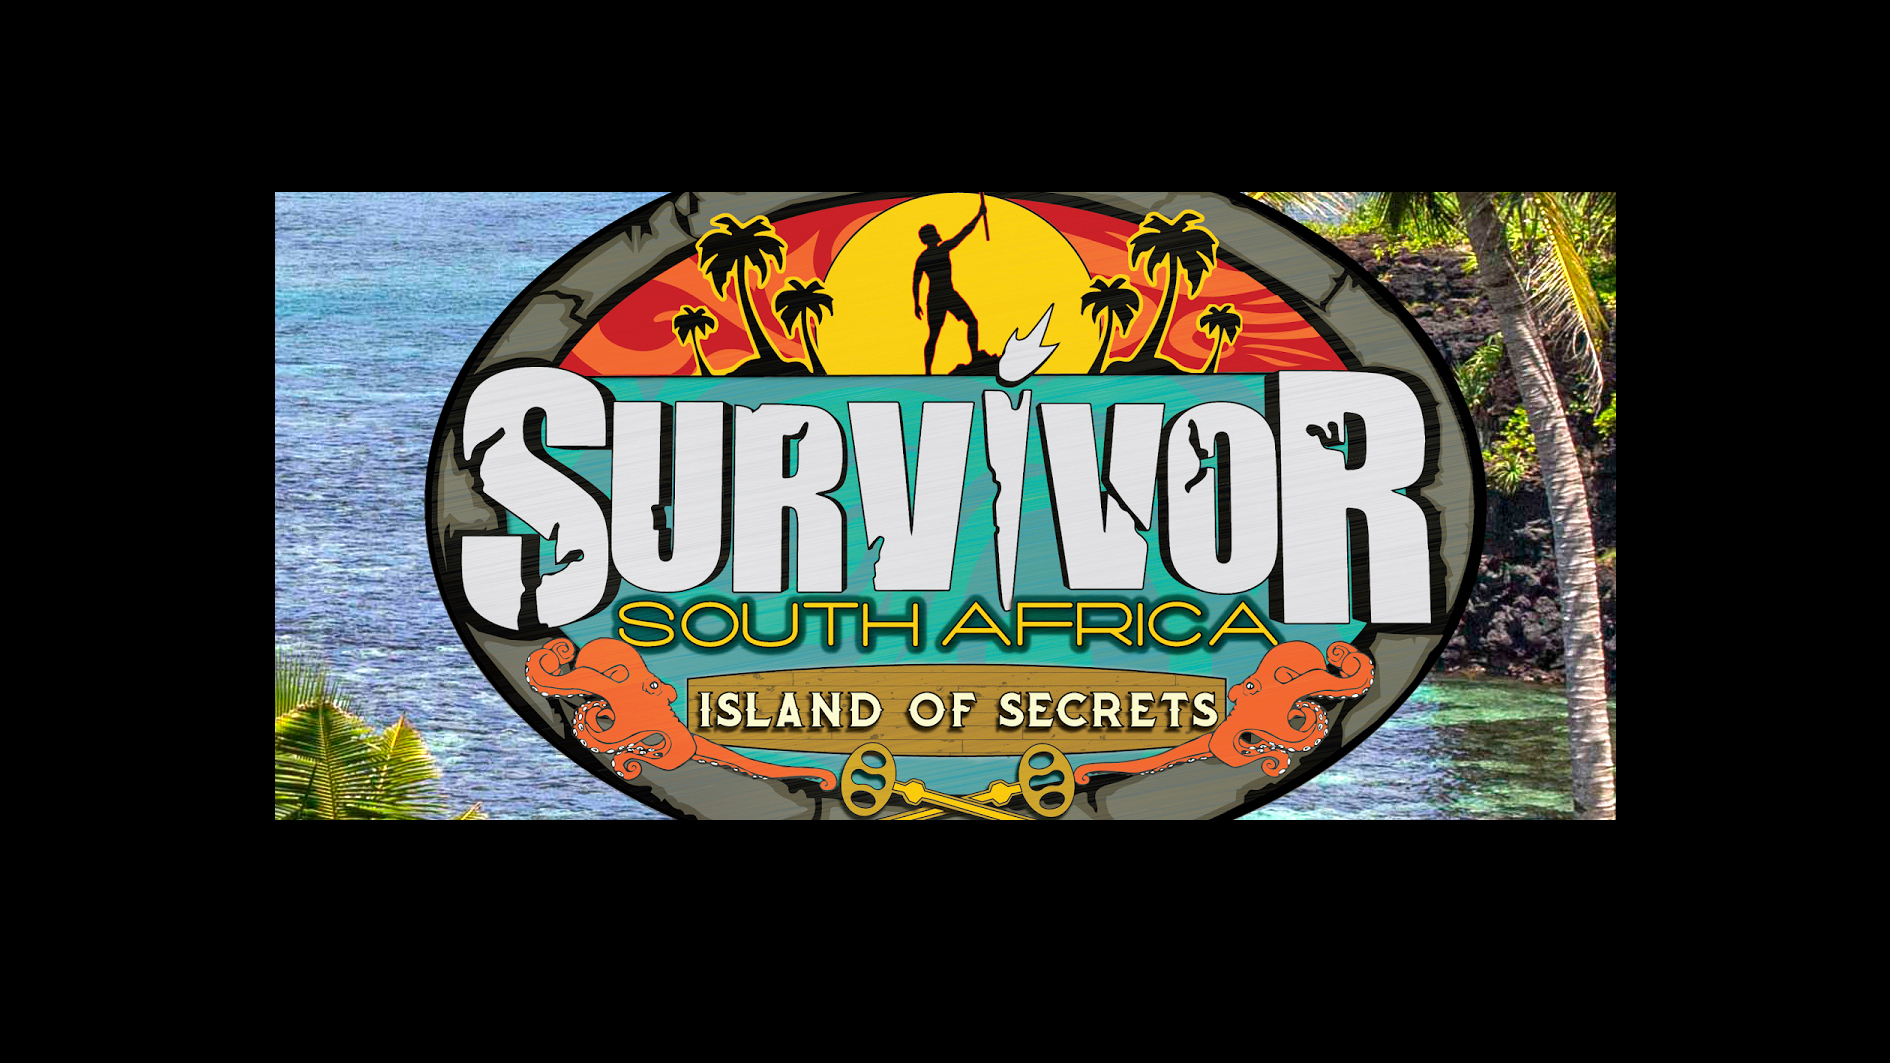 Survivor Island of secrets